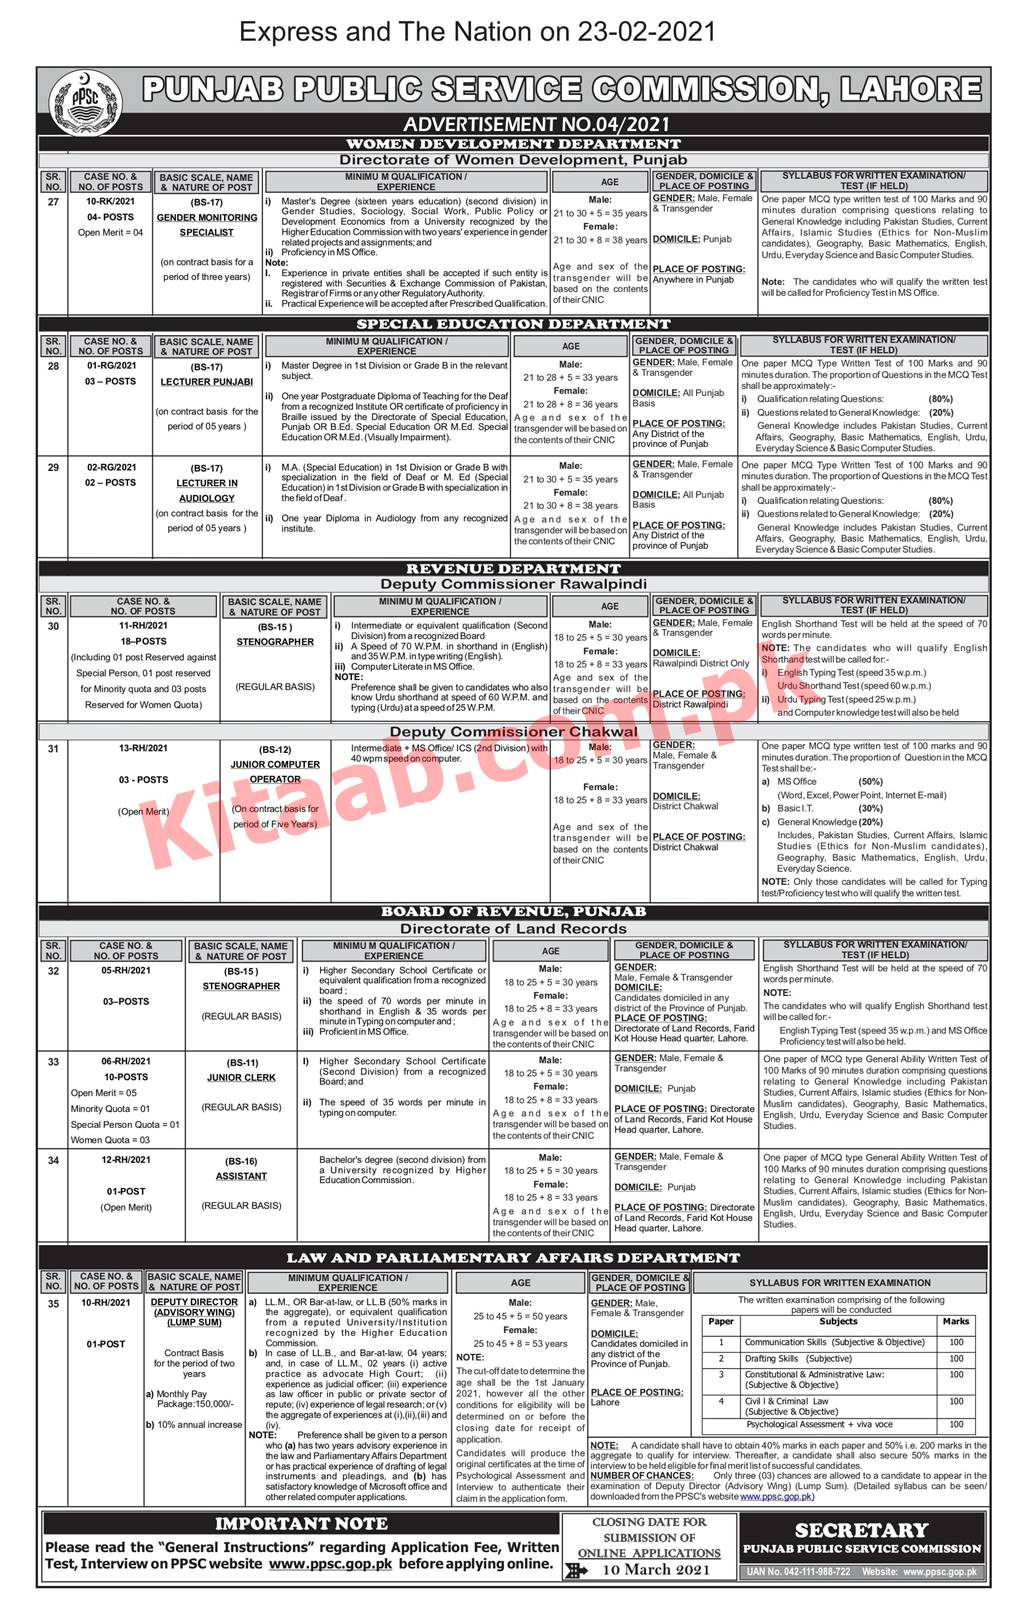 Women Development Department PPSC Jobs 2021 Online Application Form Eligibility Criteria